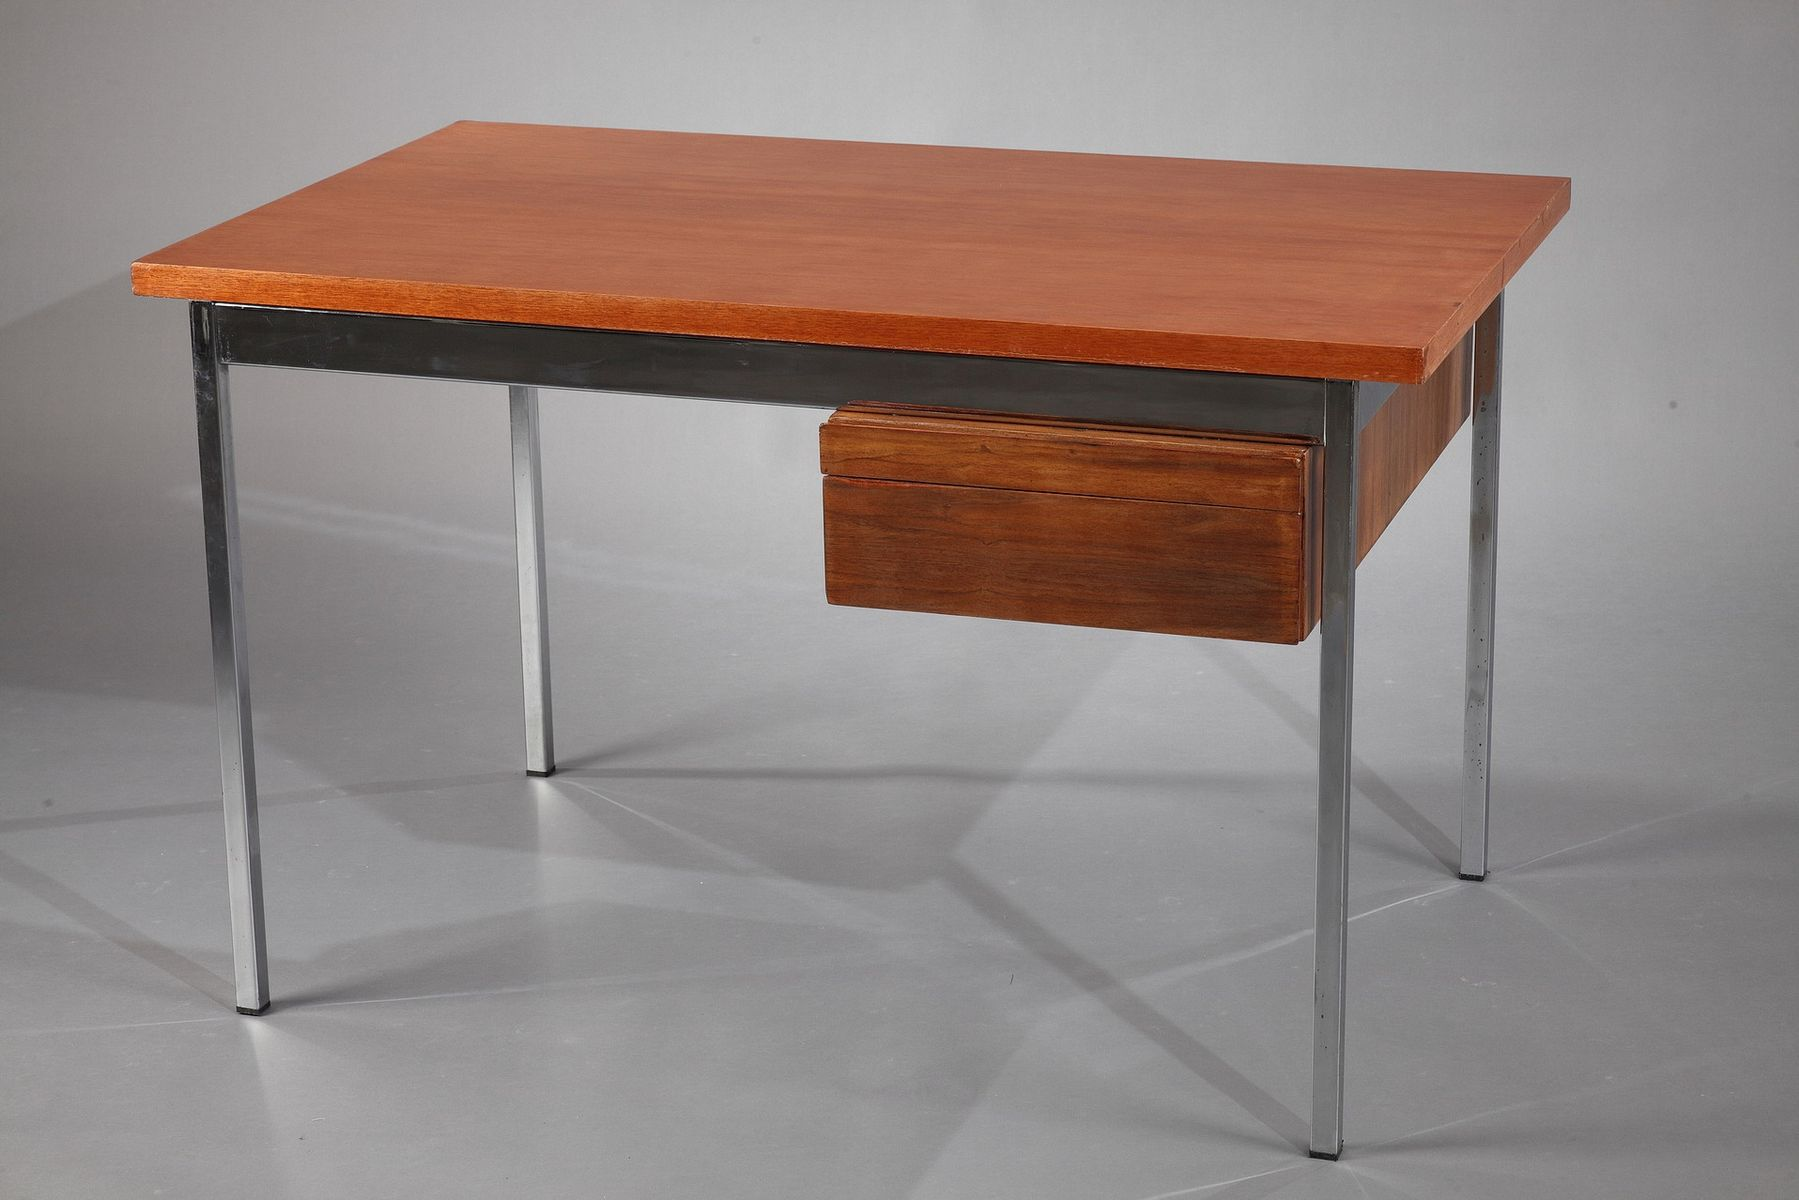 modernist desk by florence knoll for knoll s for sale at pamono - modernist desk by florence knoll for knoll s